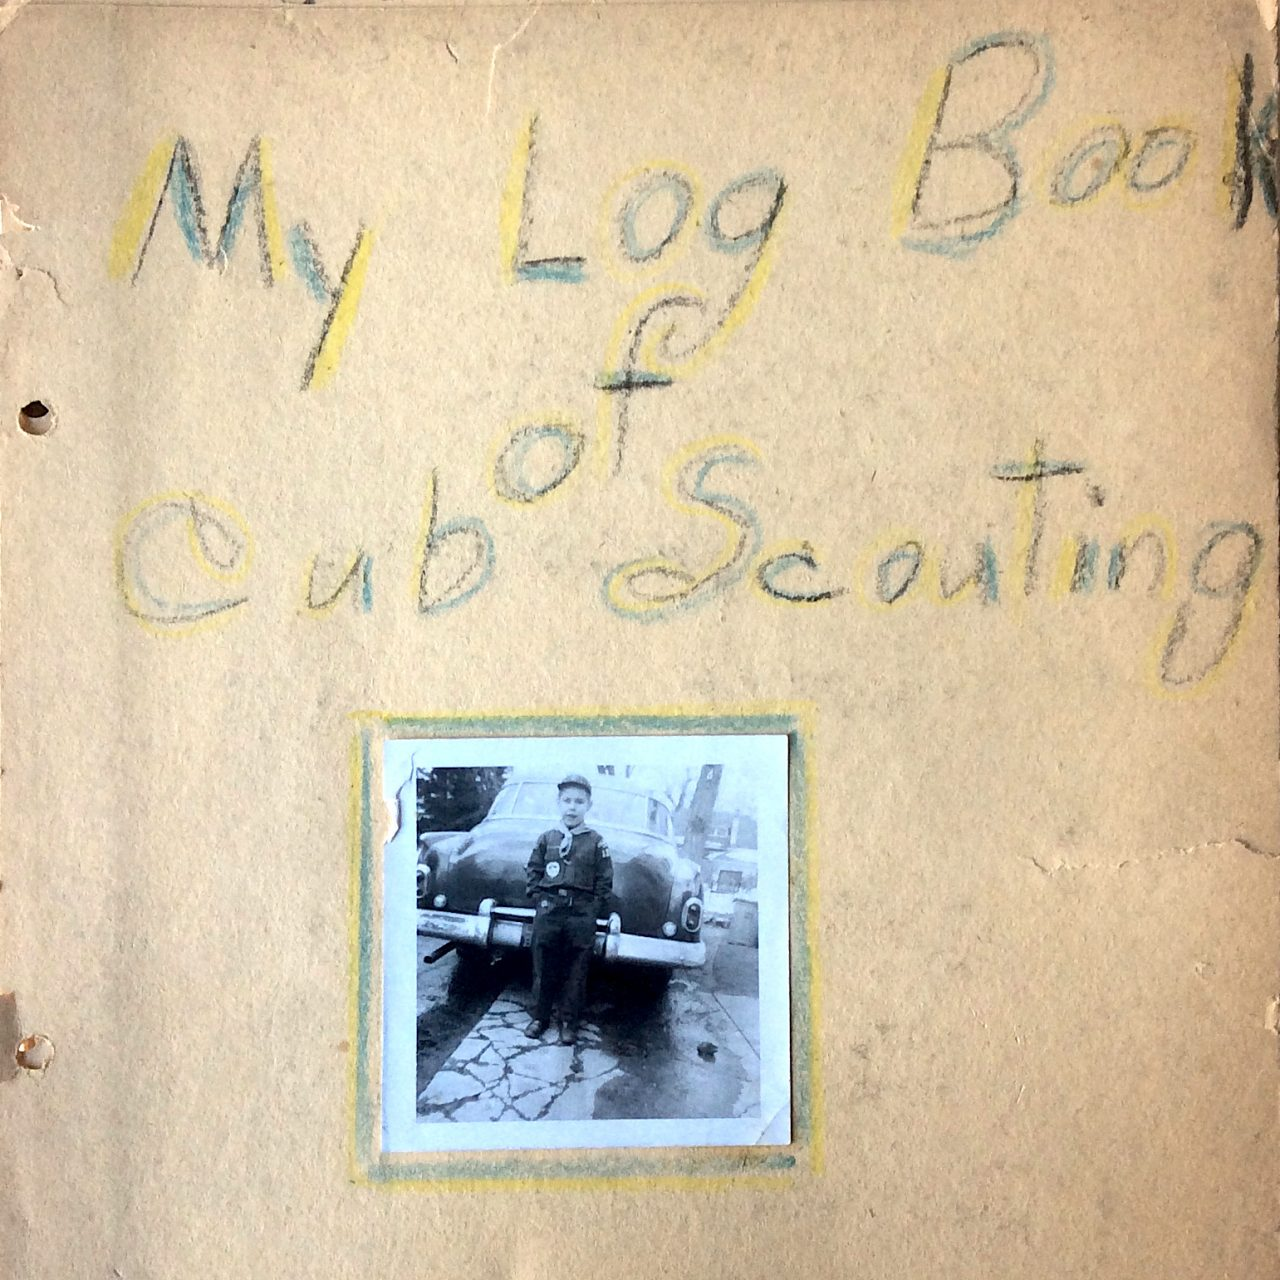 Bobcat Pins, Hot Chocolate and Toast – My Cub Scout Log Book (1957)